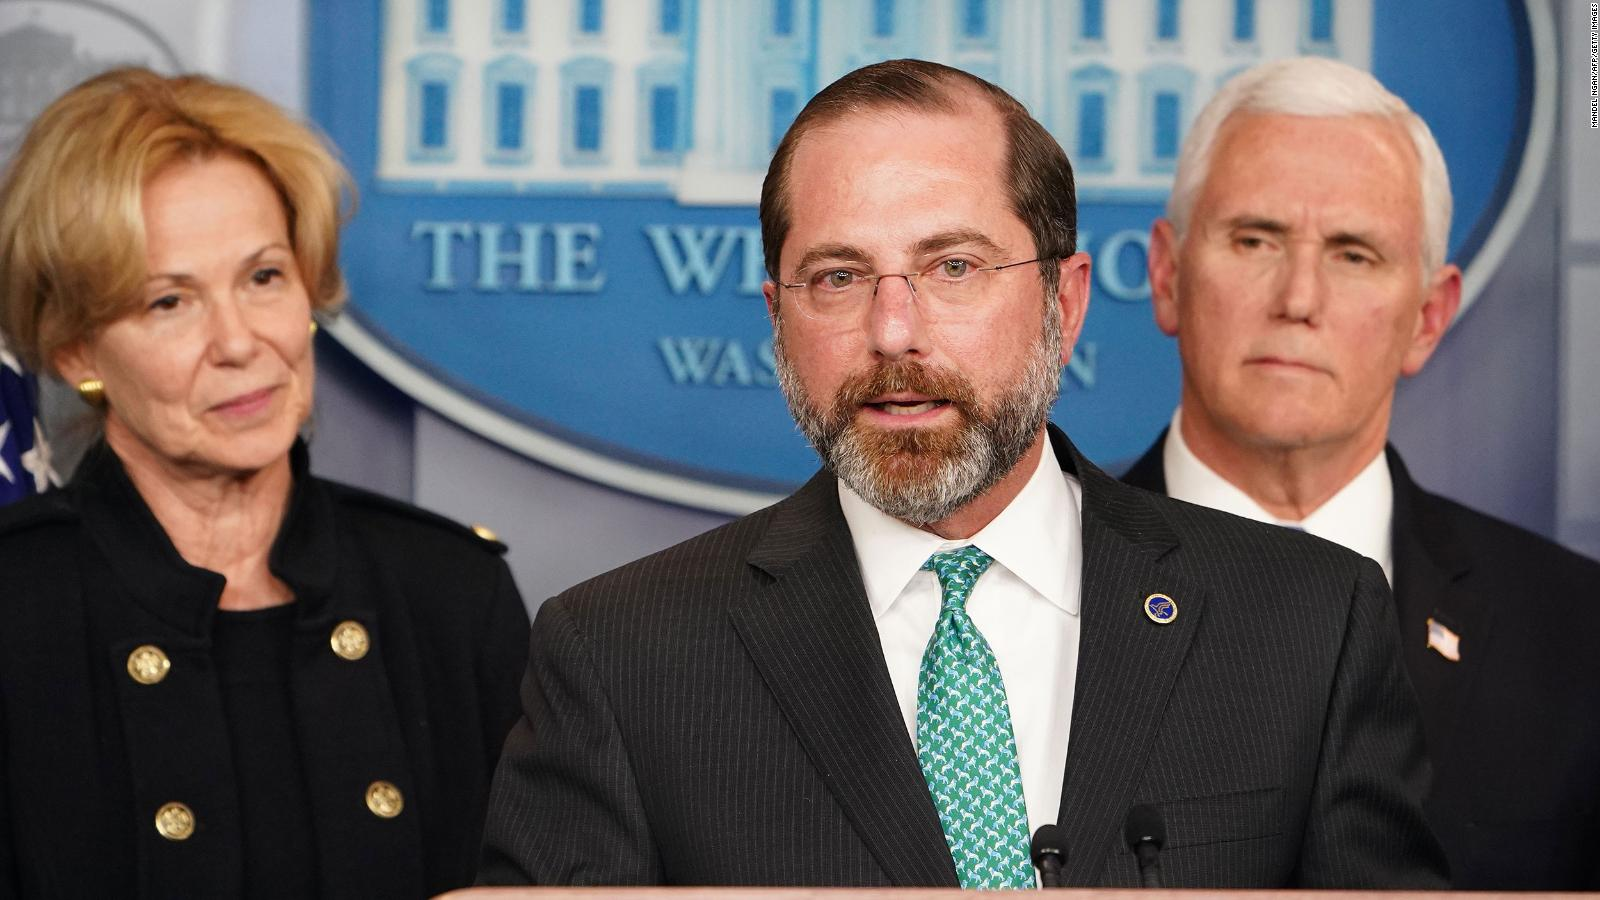 Alex Azar White House Officials Are Discussing Plans To Replace Health And Human Services Secretary Cnnpolitics